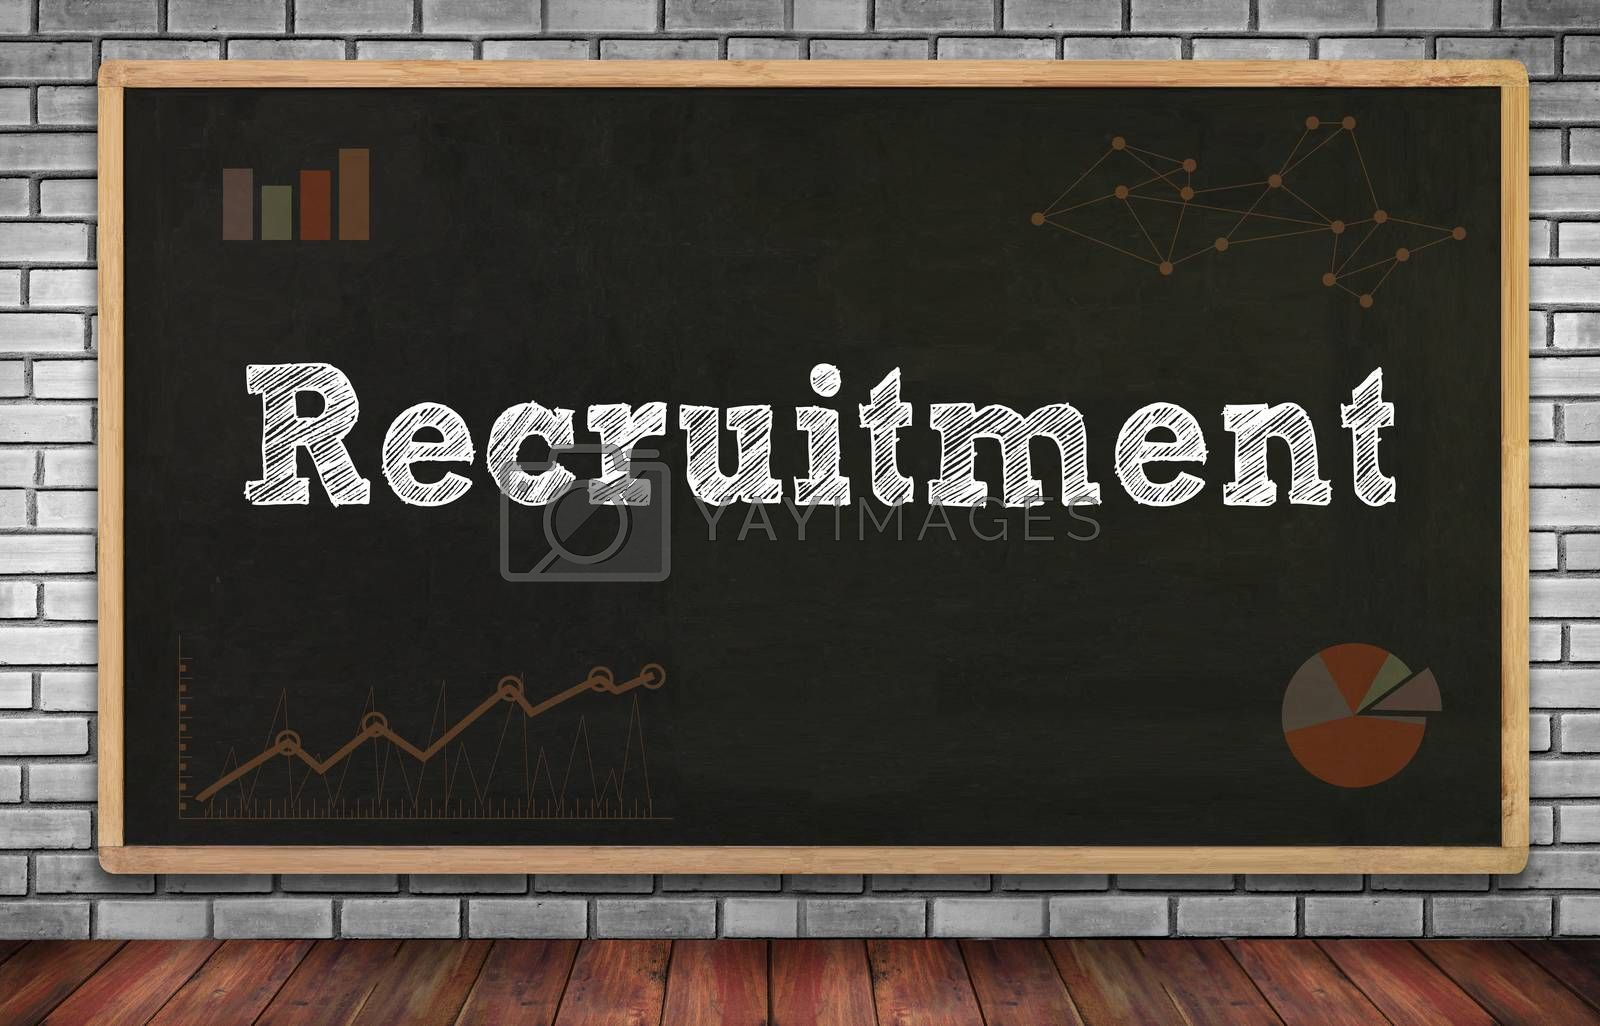 Recruitment on brick wall and chalkboard background